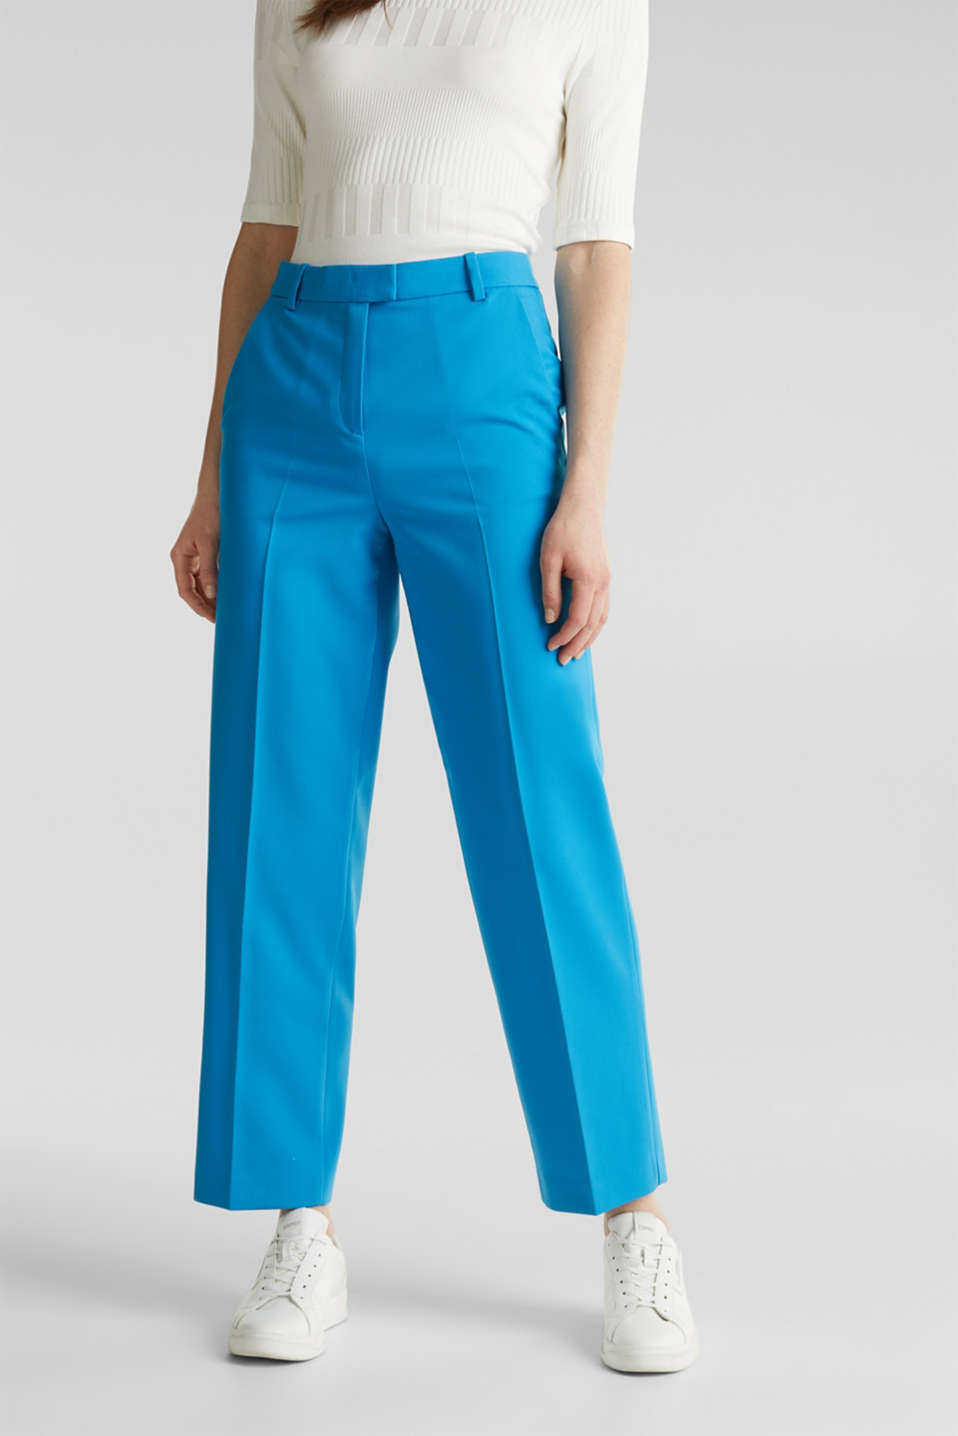 SHIMMER mix + match stretch trousers, DARK TURQUOISE, detail image number 5